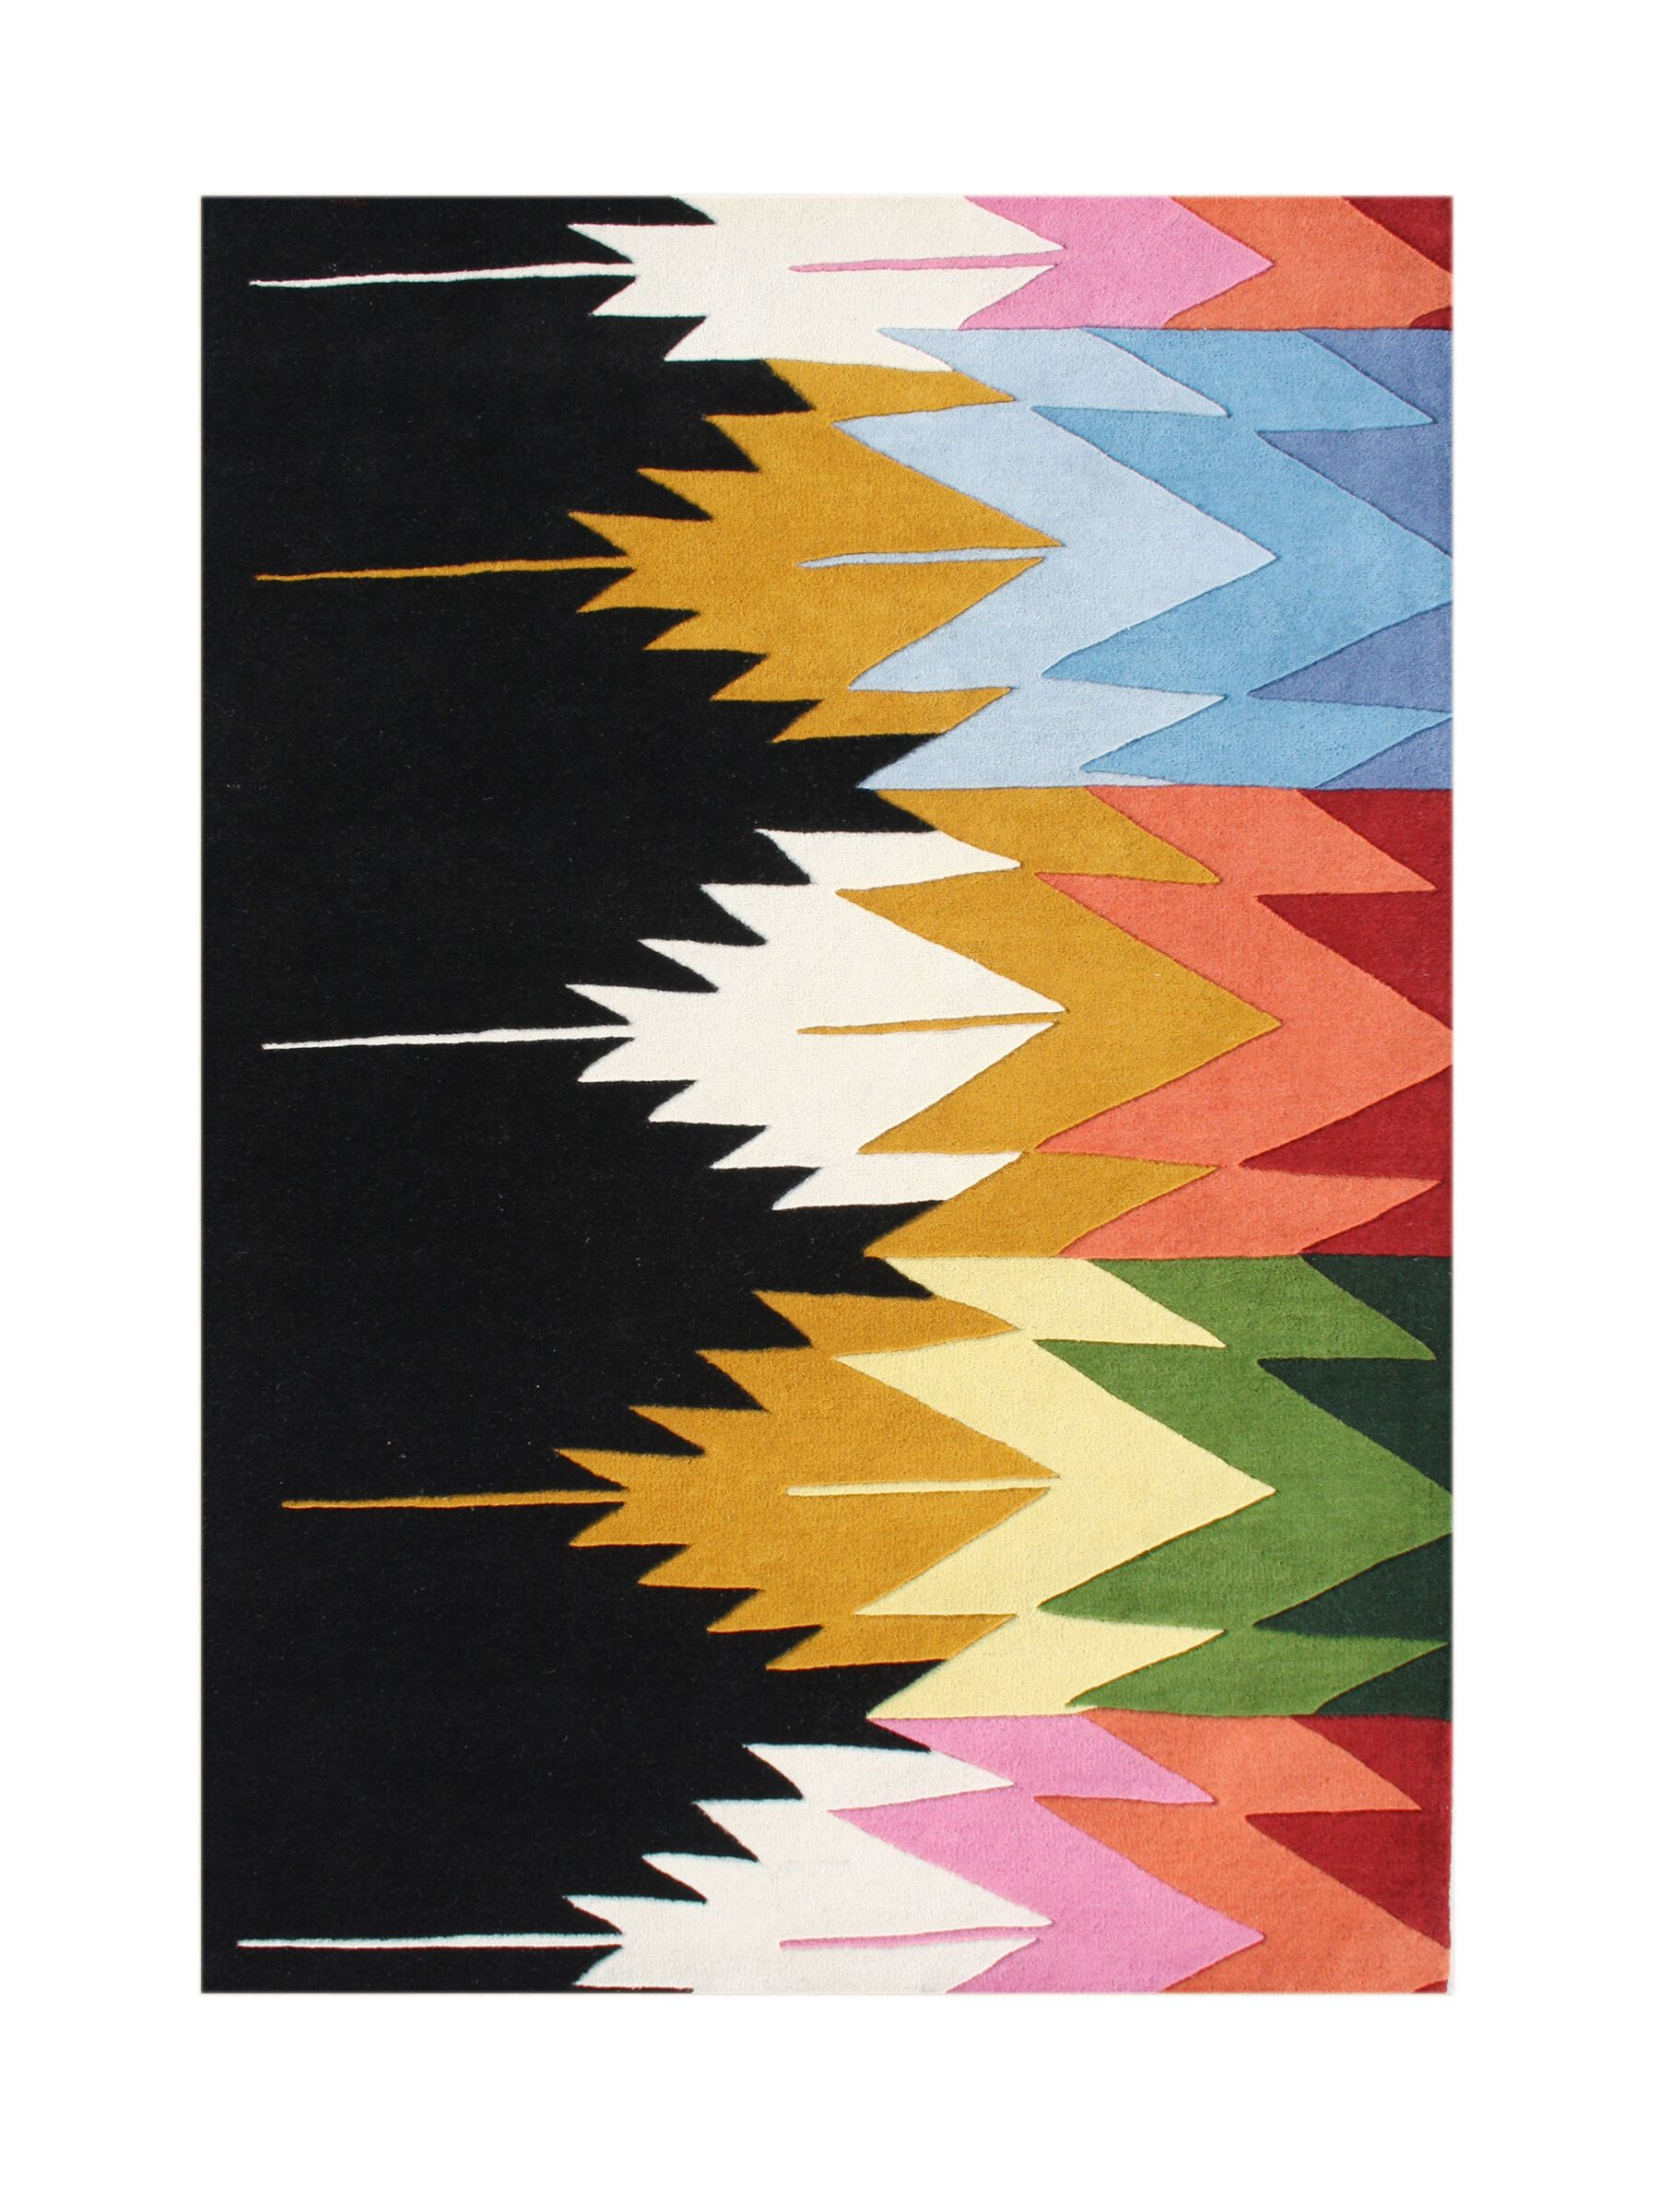 Whitney Hand-Tufted Area Rug Rug Size: Rectangle 9' x 12'